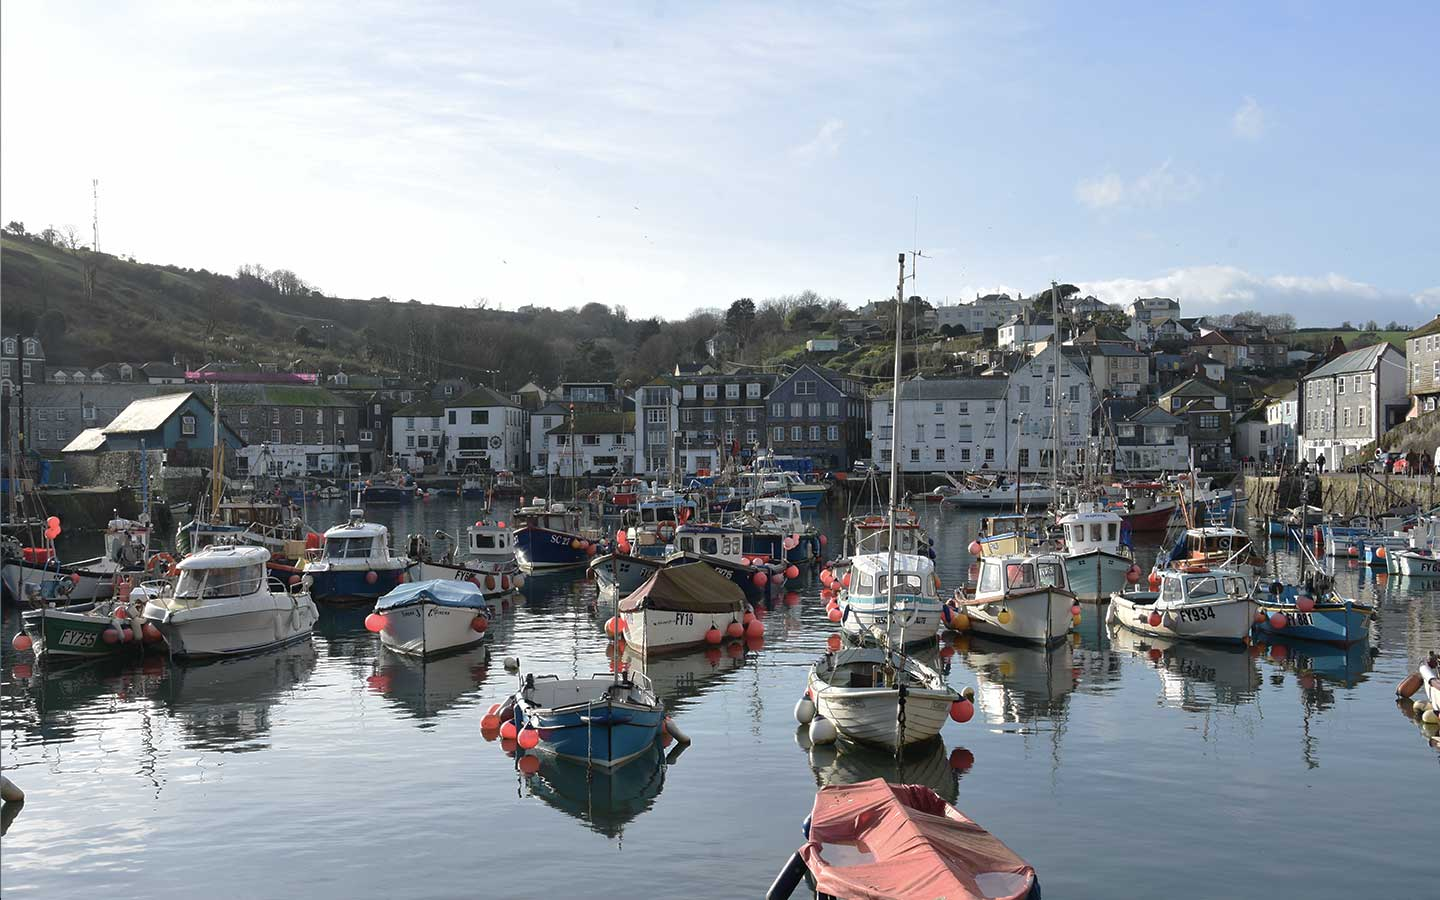 mevagissey fishing town in cornwall, uk